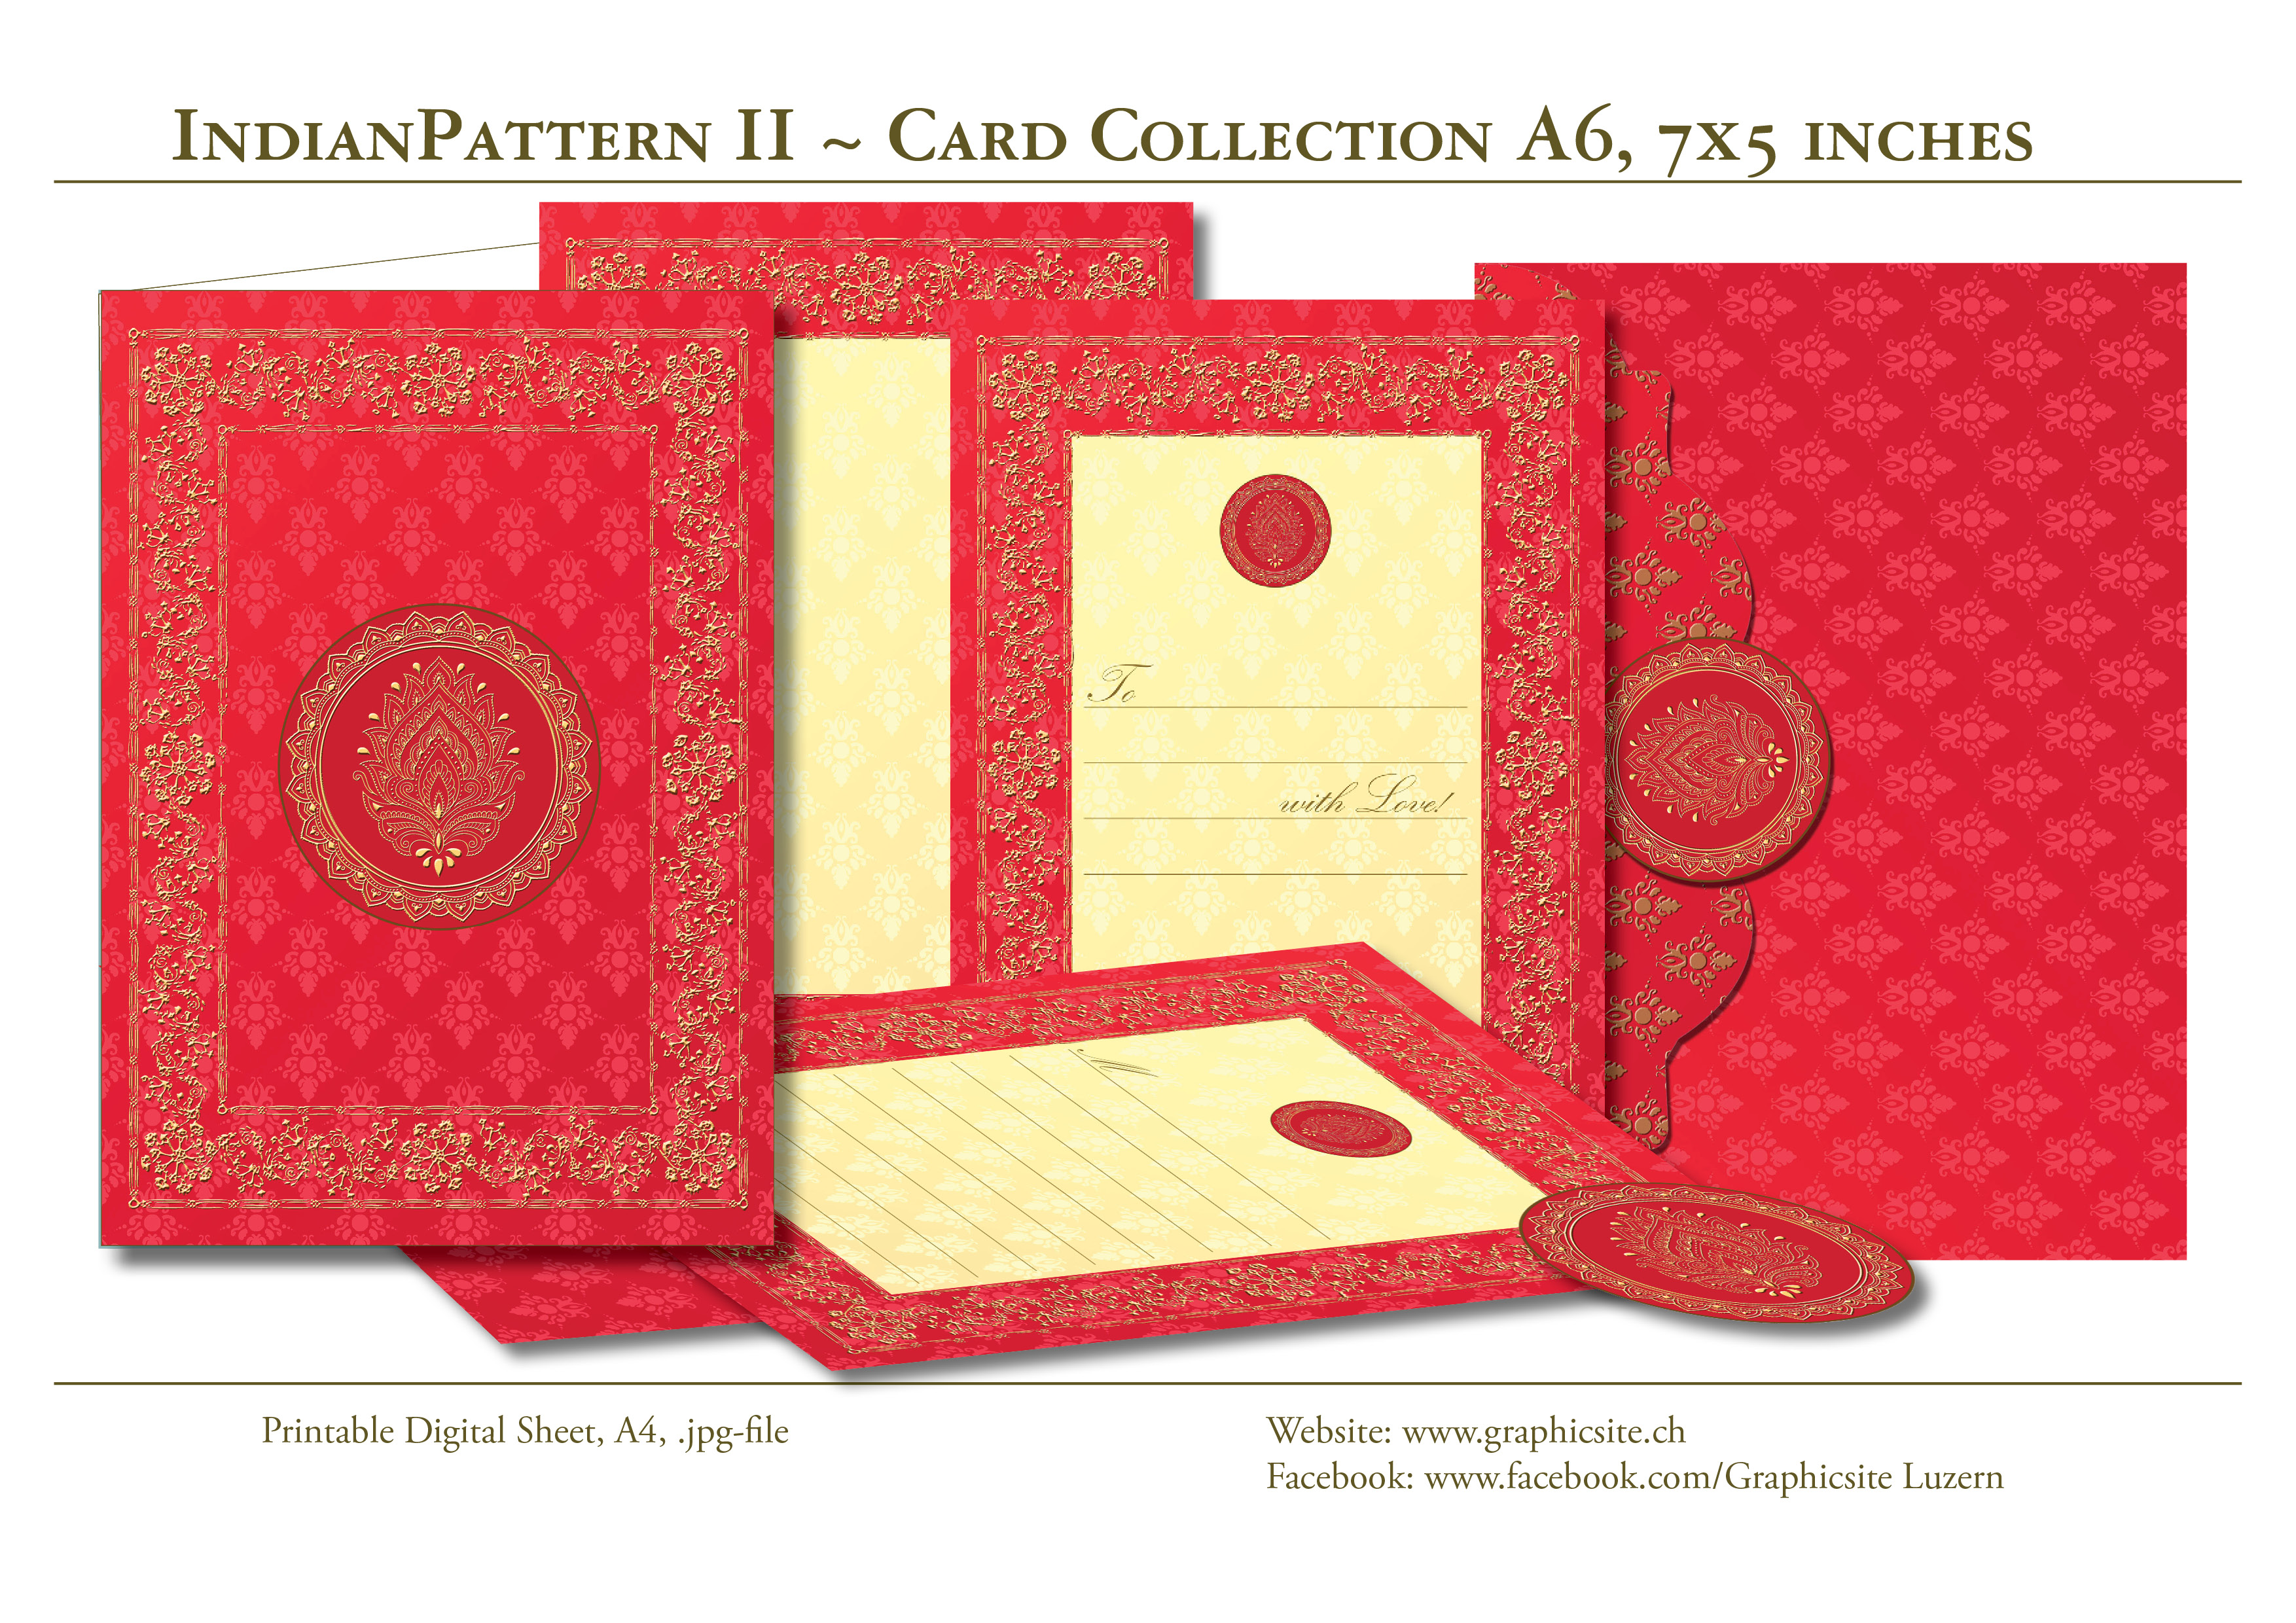 Indian Pattern 2 - Card Collection A6 - India, Yoga, Meditation, Wedding, Engagement, Graphic Design, Luzern,